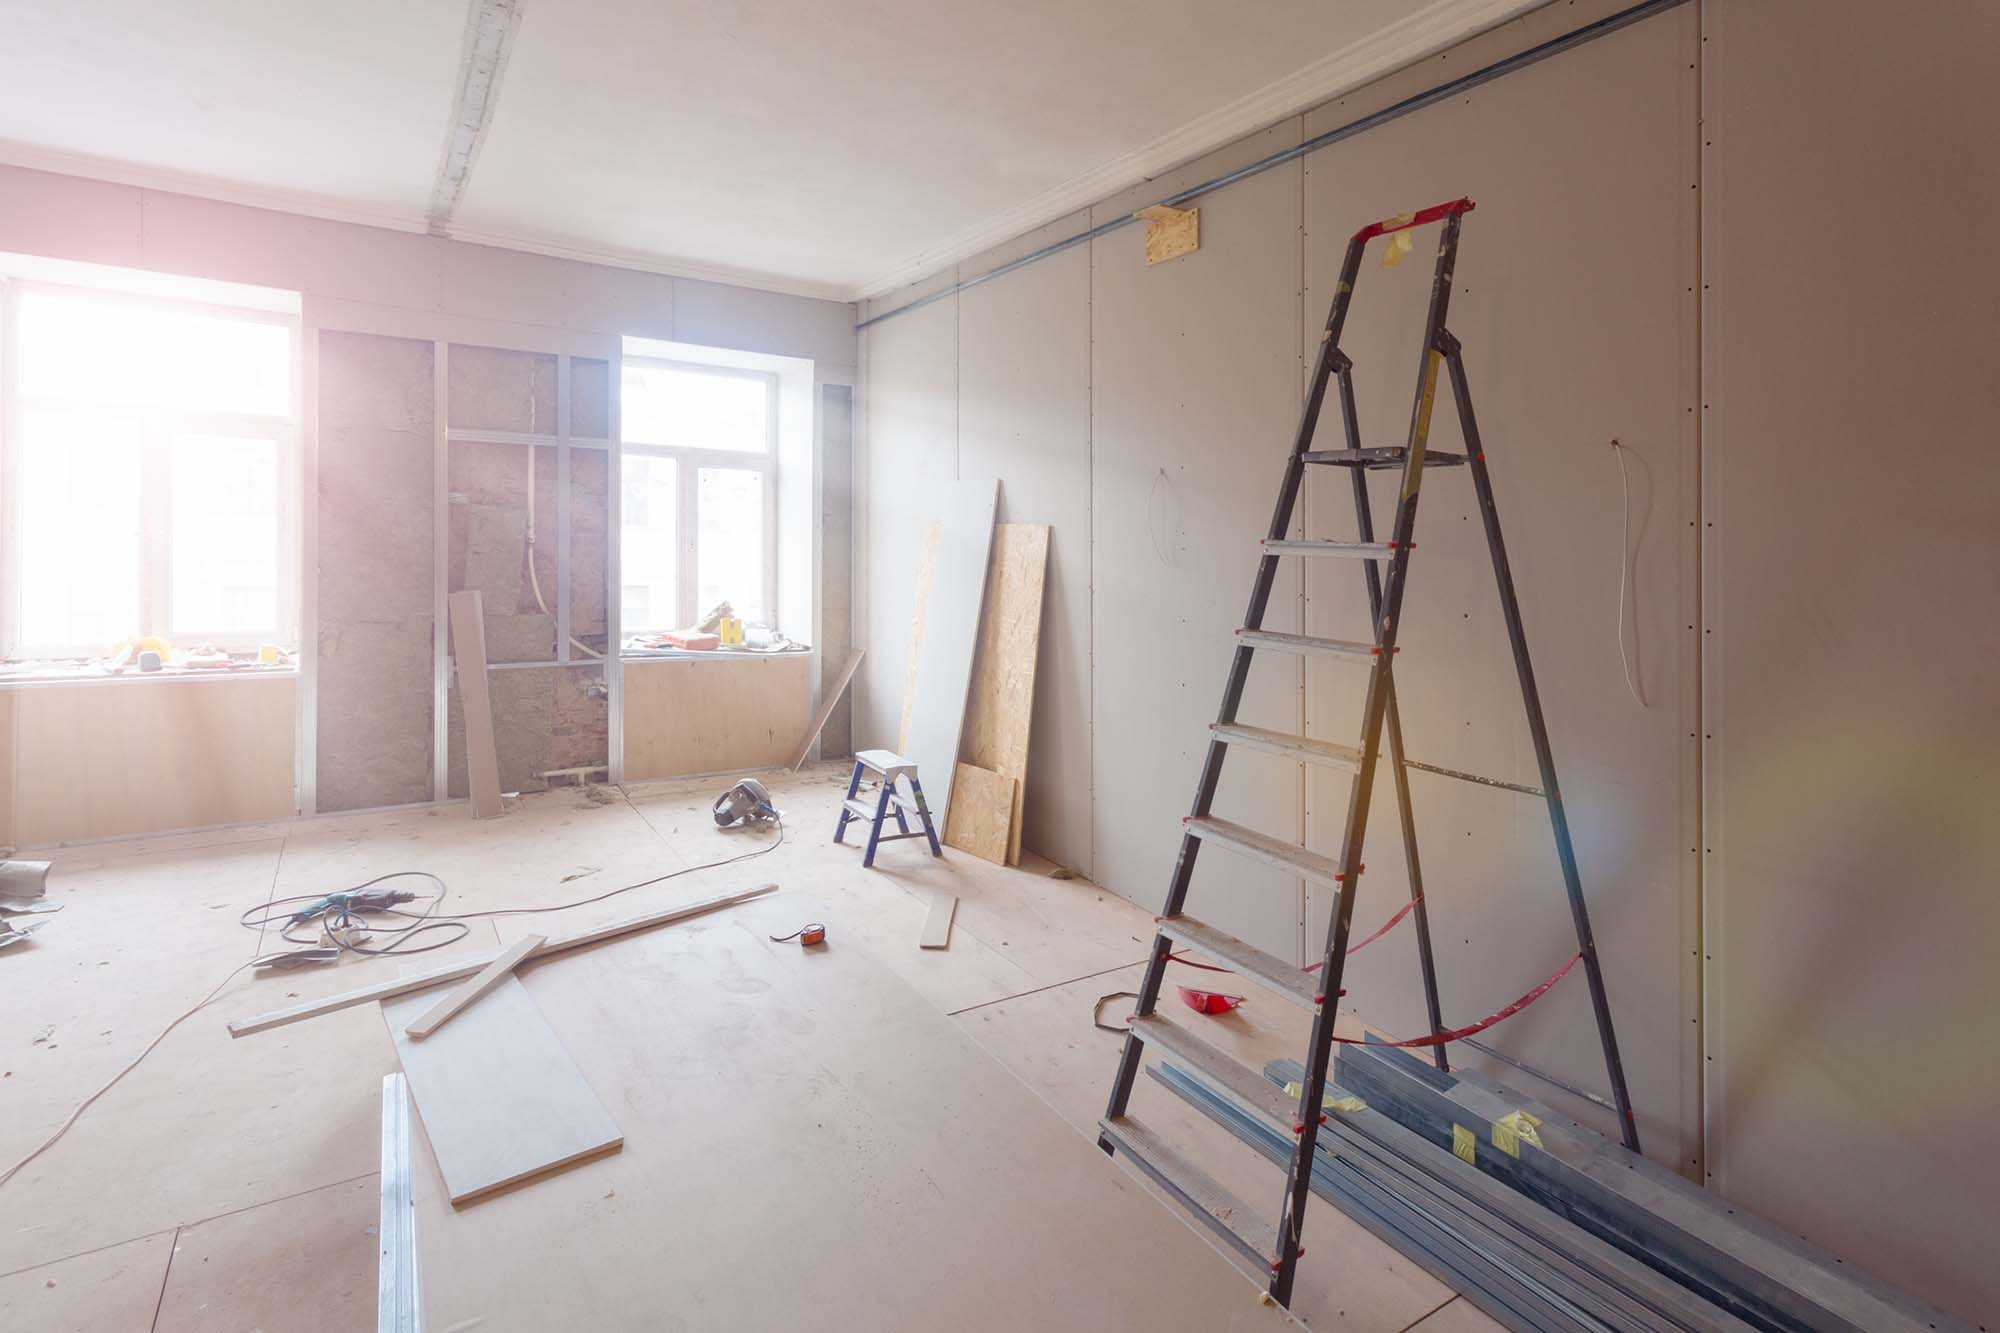 interior of apartment during construction